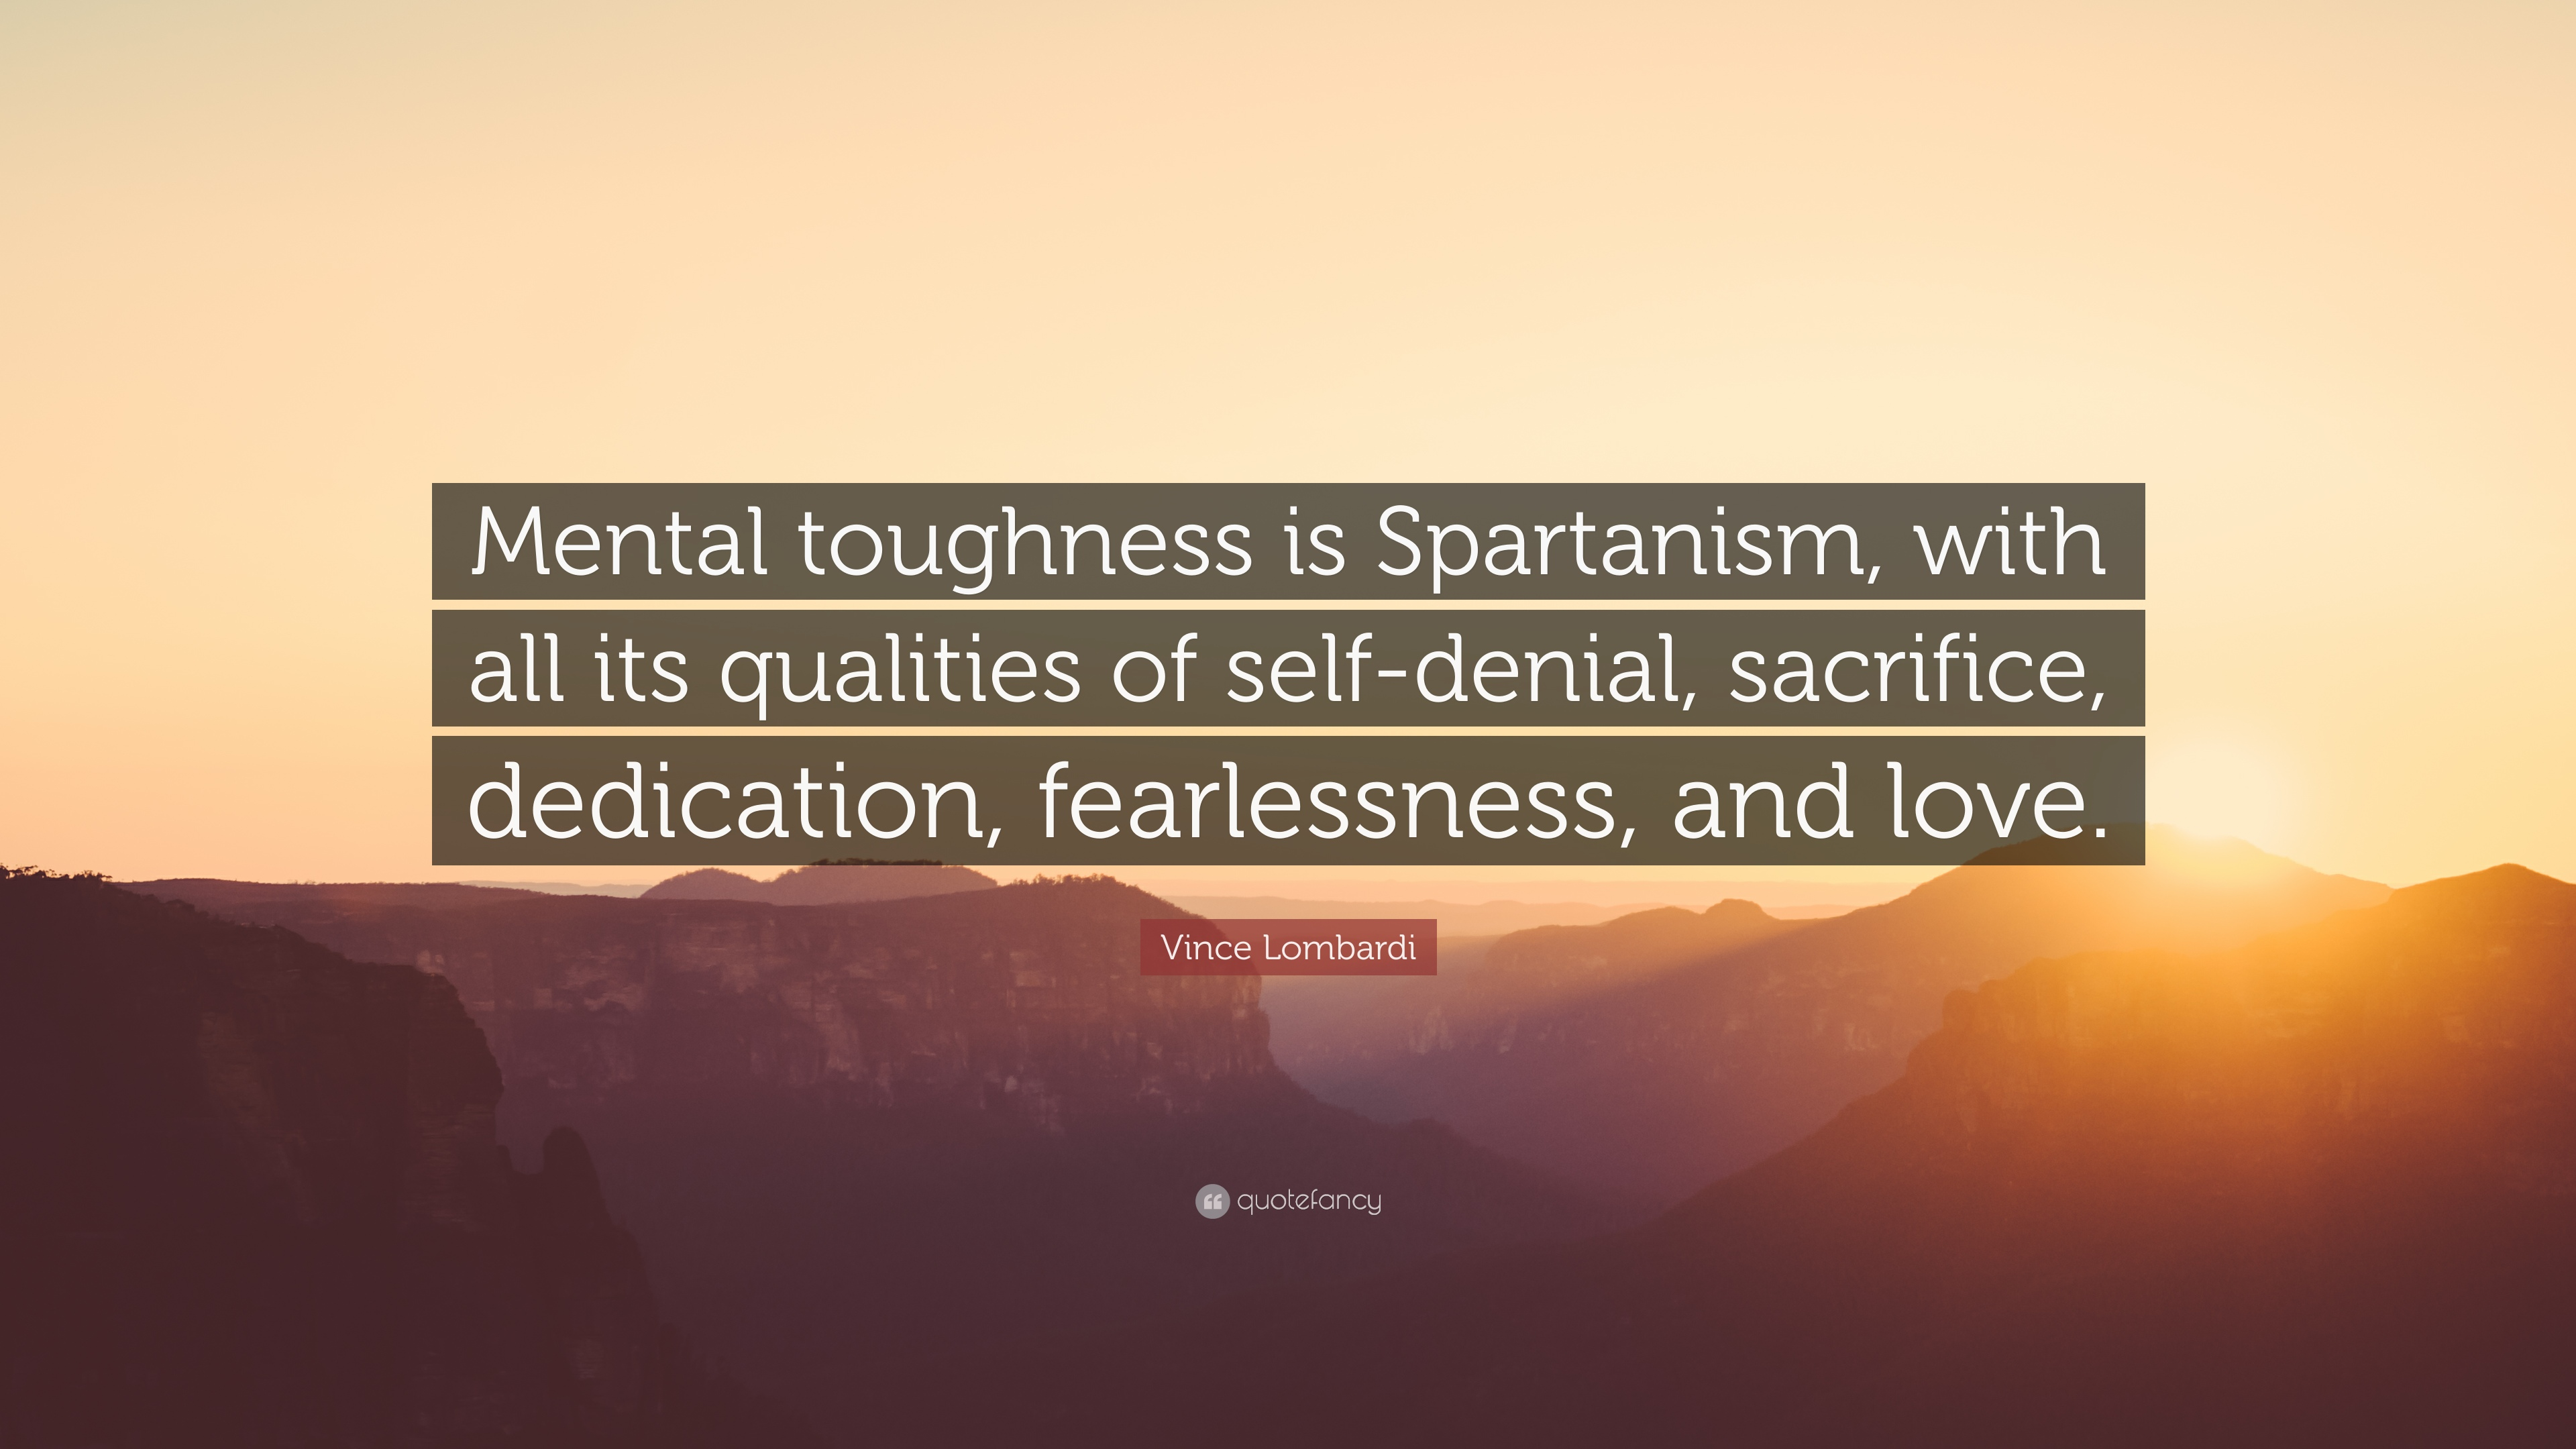 vince lombardi quote   u201cmental toughness is spartanism  with all its qualities of self